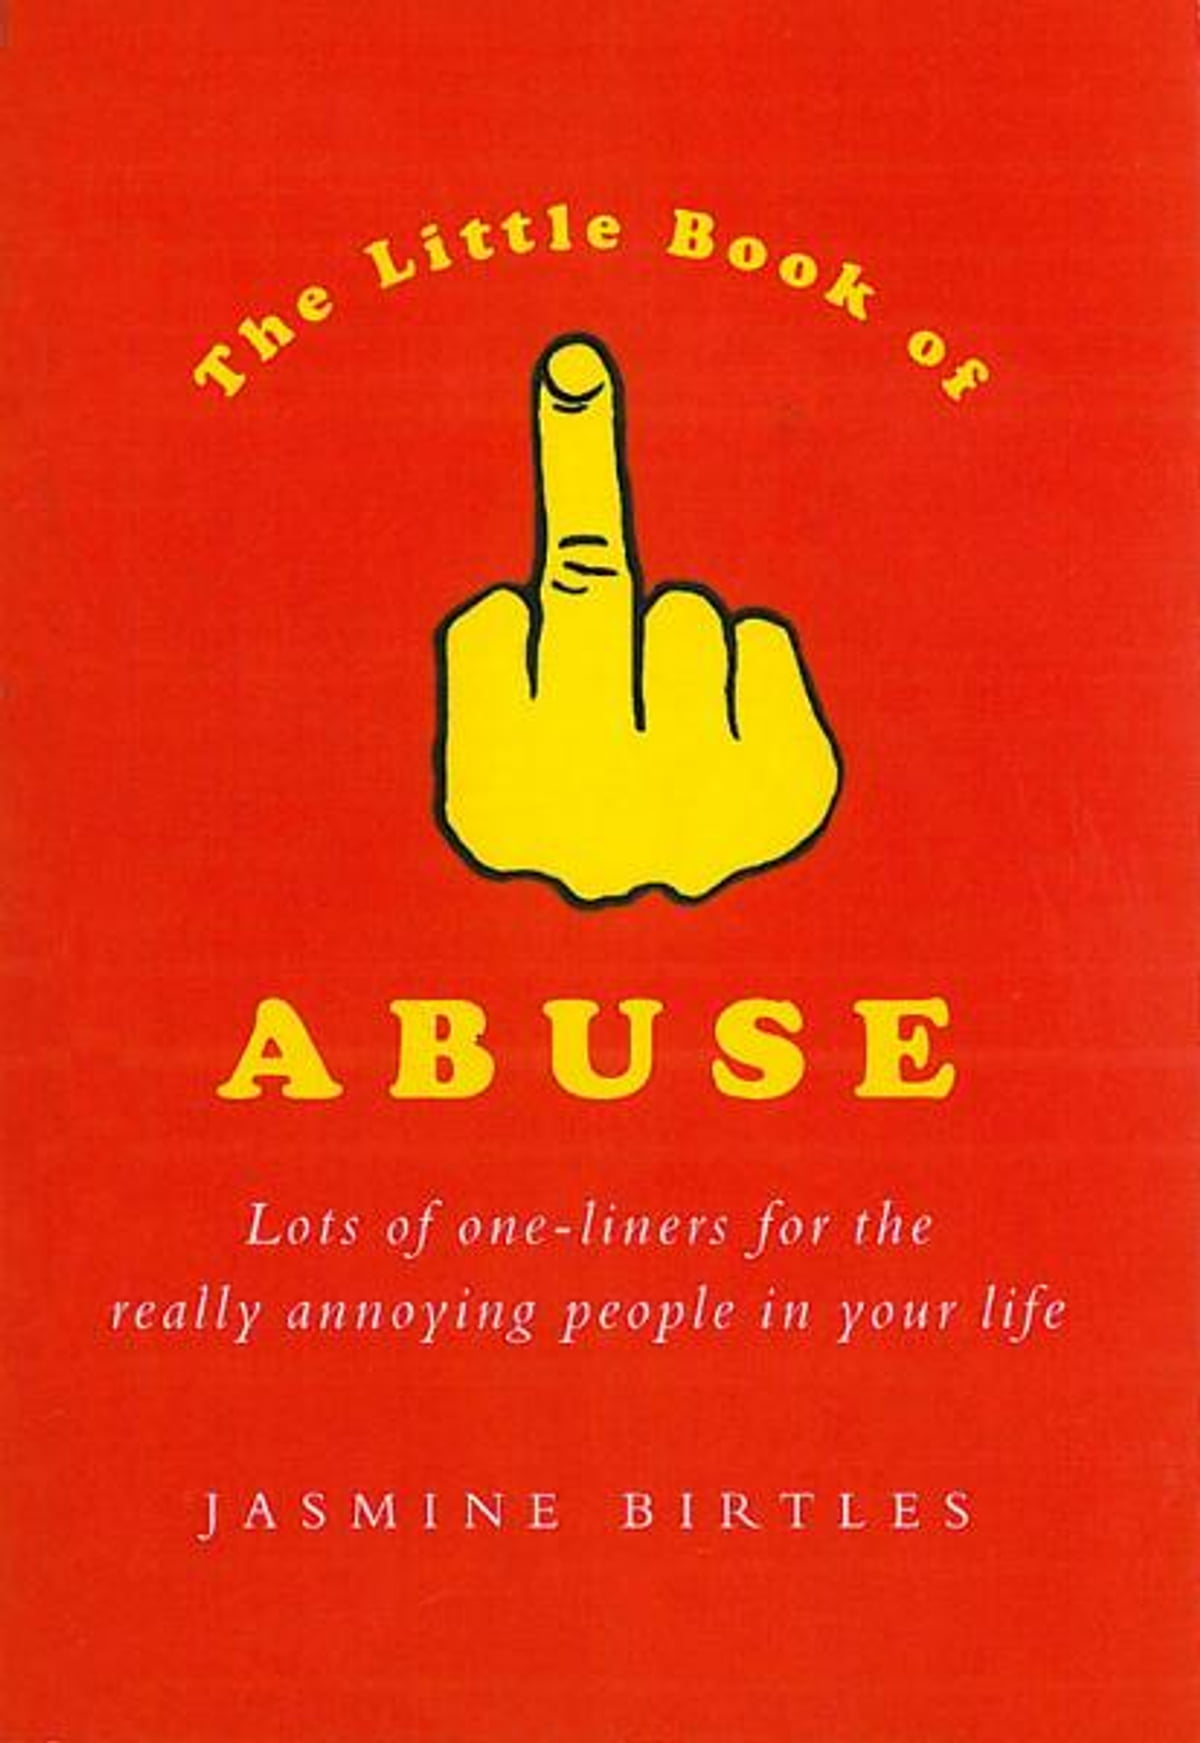 The Little Book Of Abuse Ebook By Jasmine Birtles border=